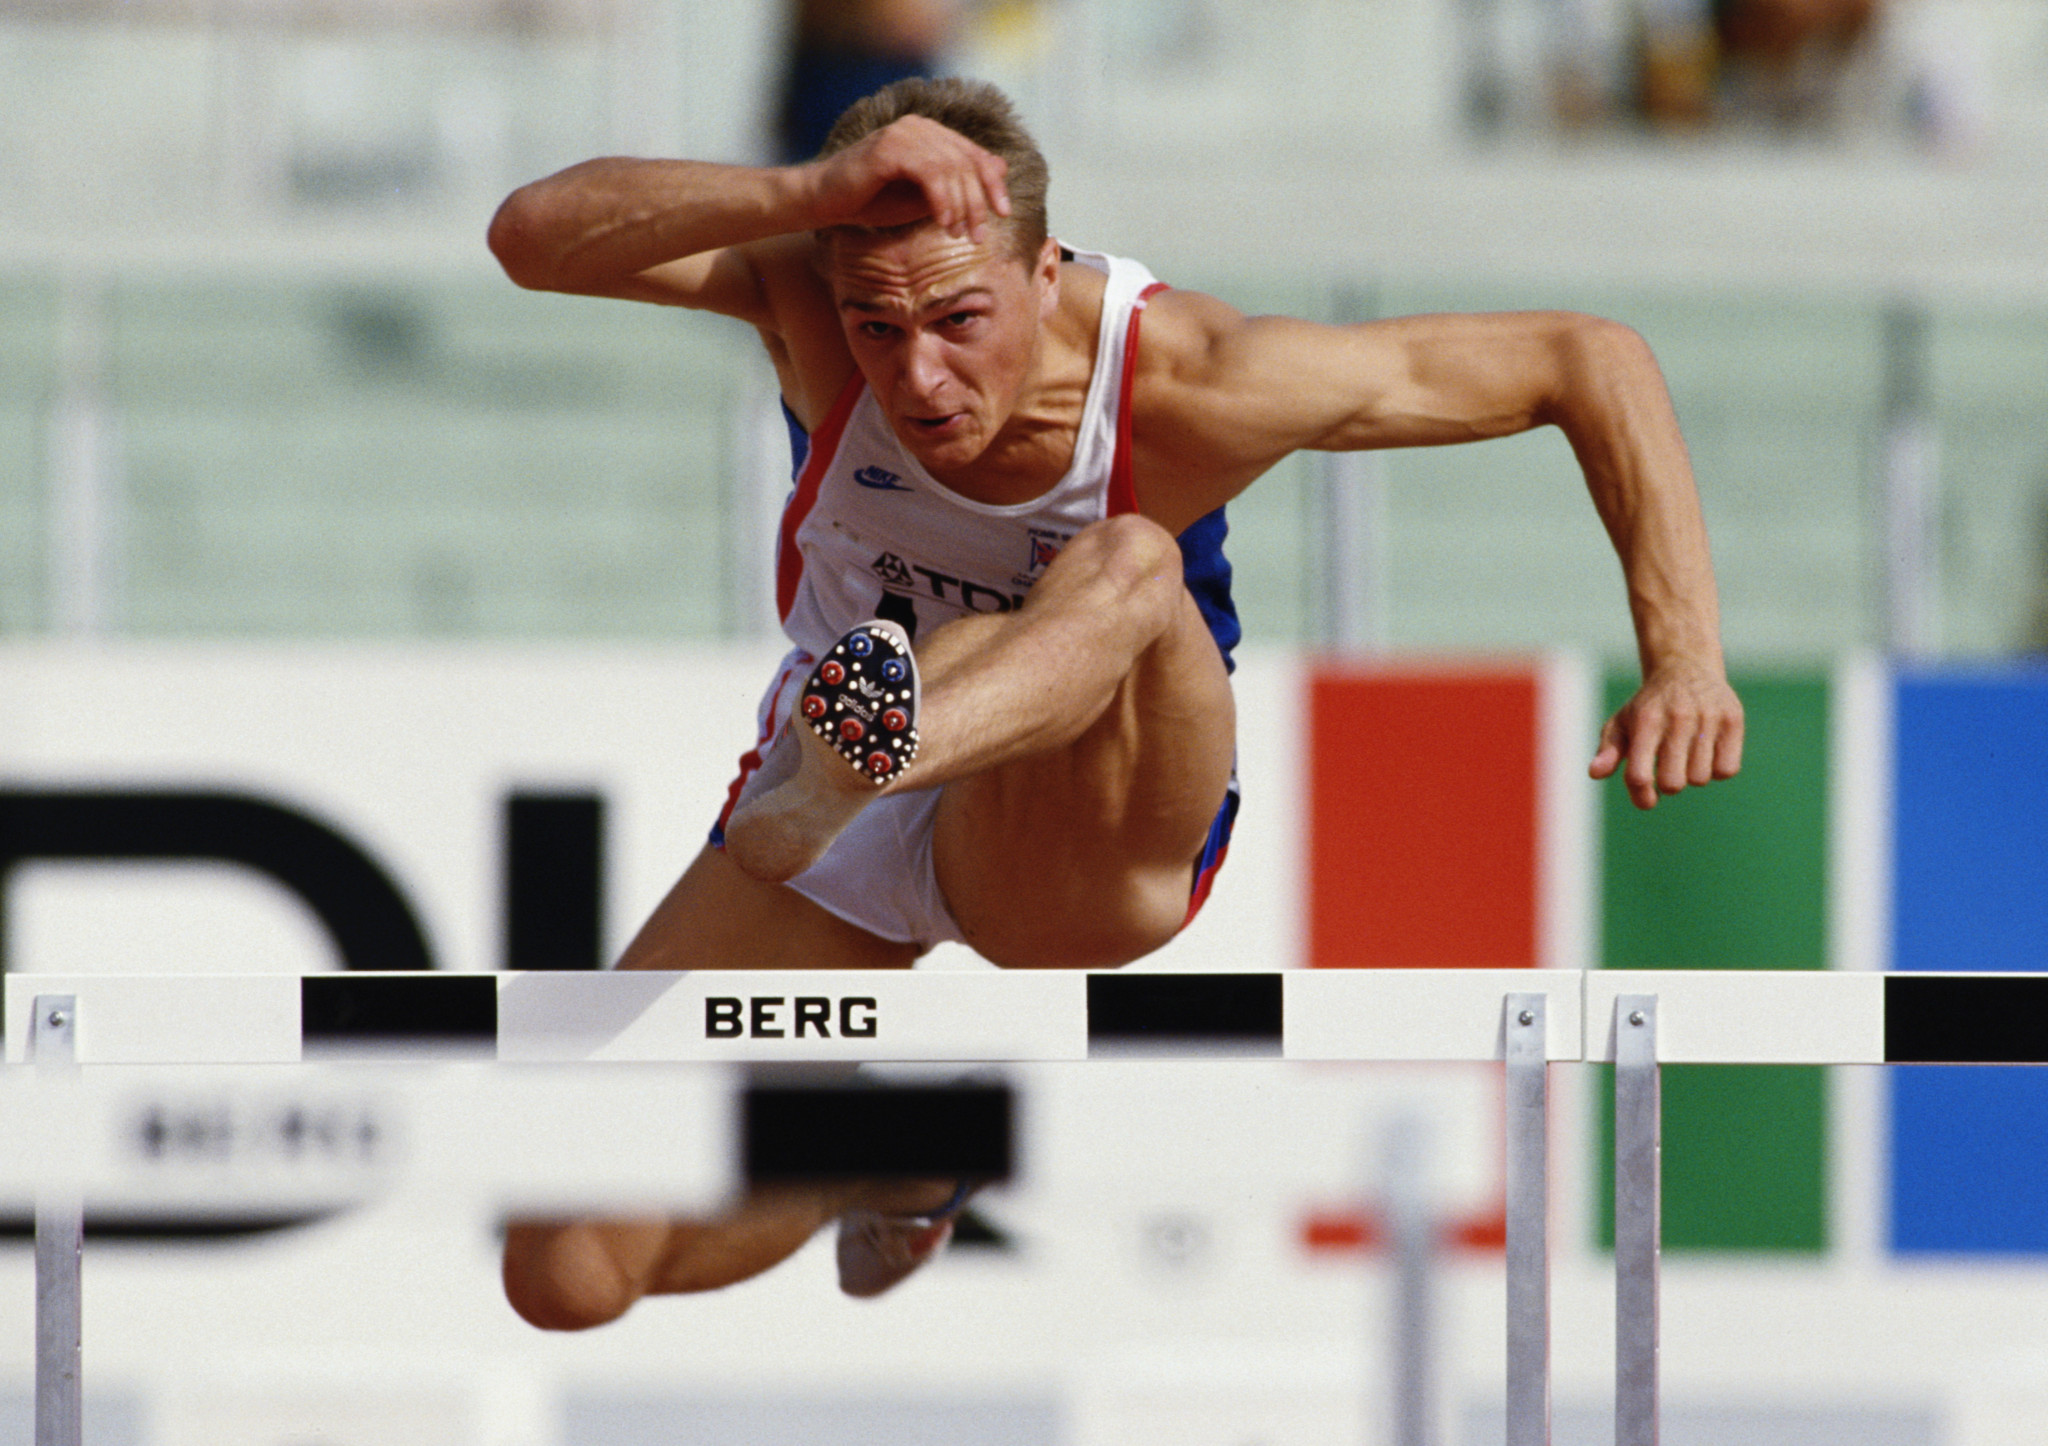 Jon Ridgeon won a silver medal in the 110 metres hurdles at the 1987 IAAF World Championships ©Getty Images